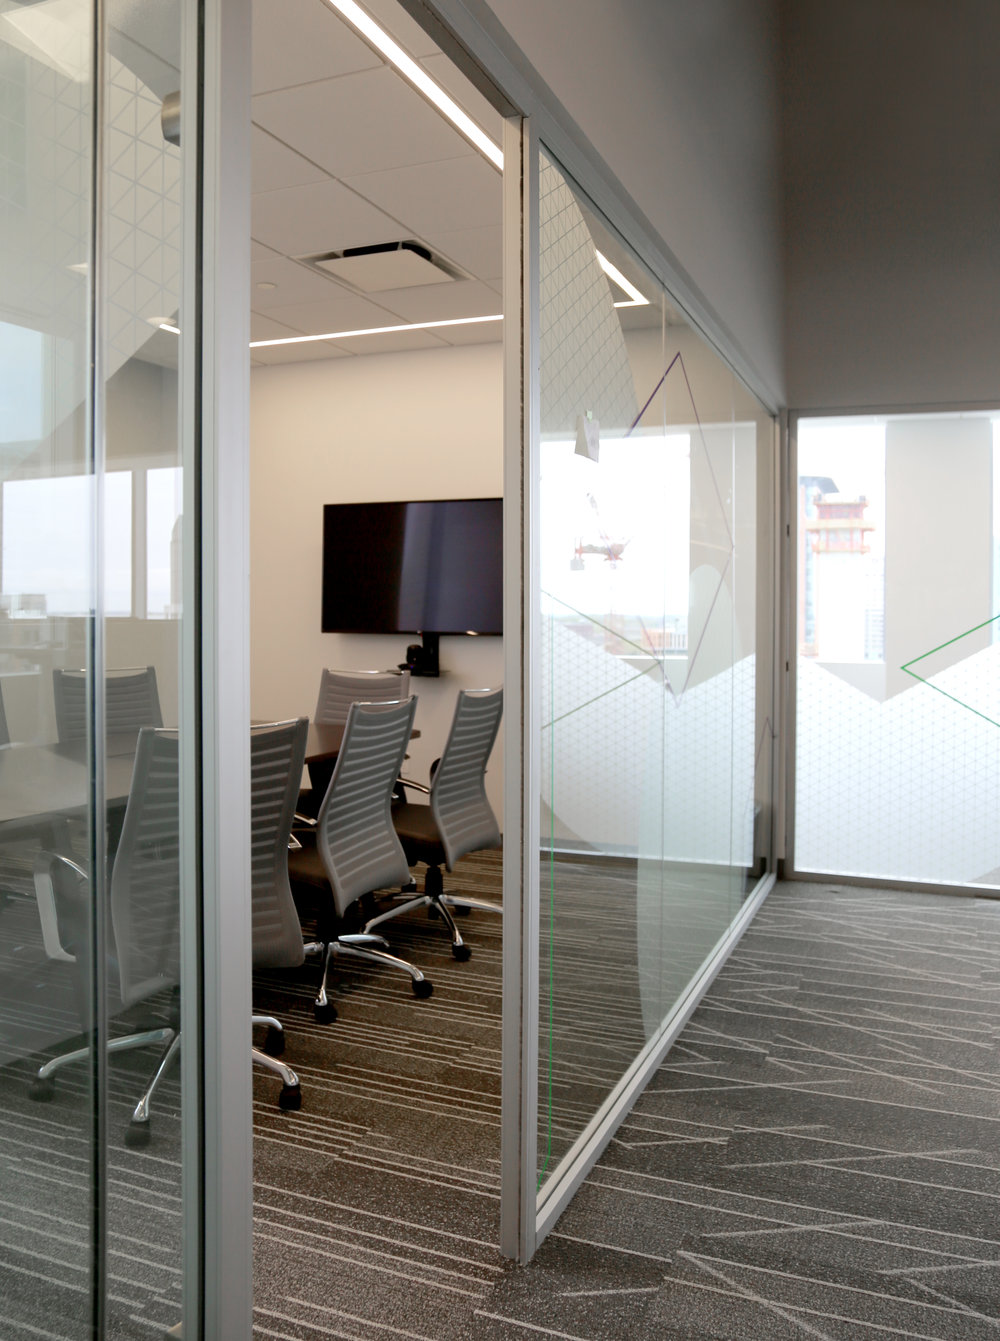 Litespace Conference Room Glass Aluminum Wall System - Spaceworks AI.jpg